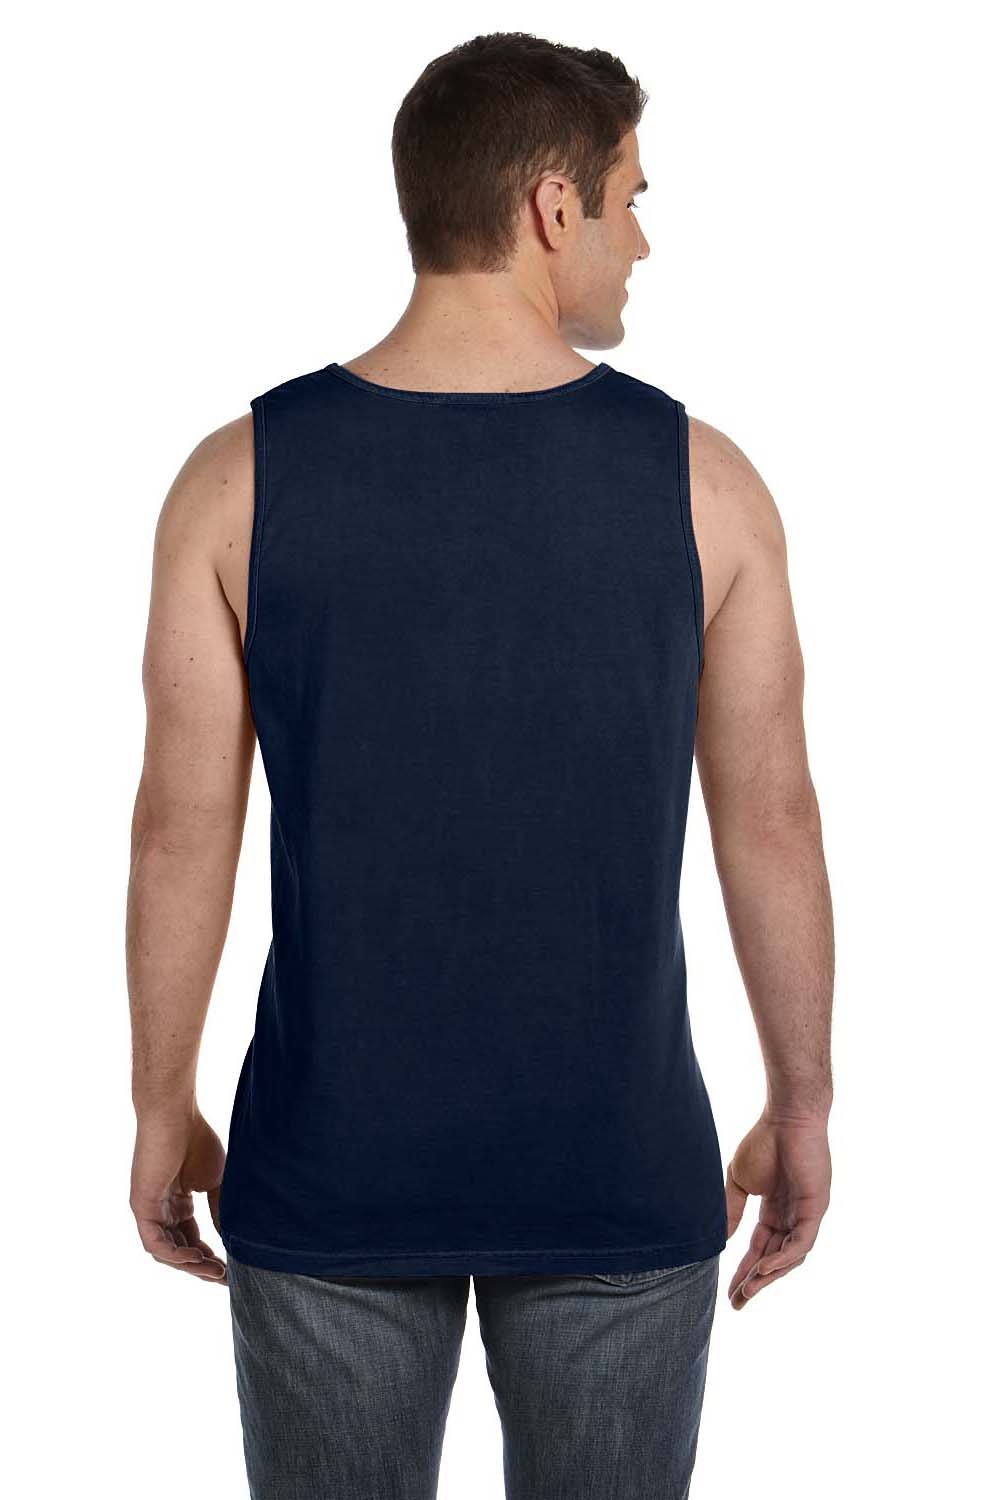 Comfort Colors C9360 Mens Tank Top Navy Blue Back